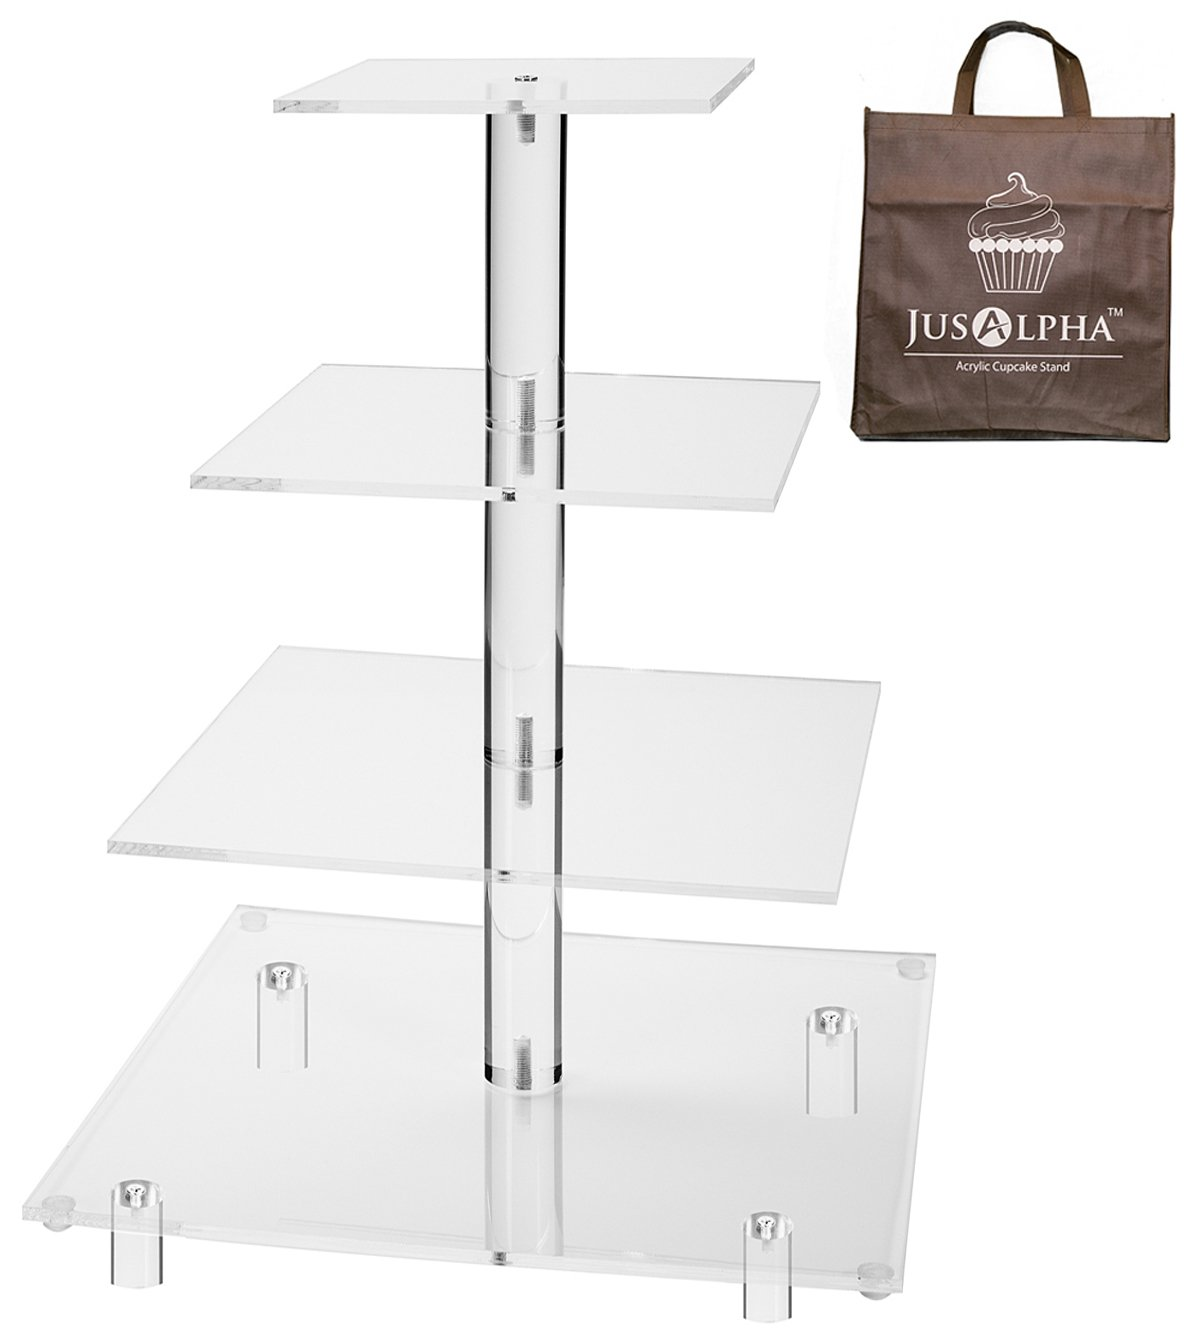 Jusalpha 4 Tier Square Wedding Acrylic Cupcake Tower Stand-Cake Stand-Dessert Stand 4 Tier (Tall version) (4SF-15 IN)